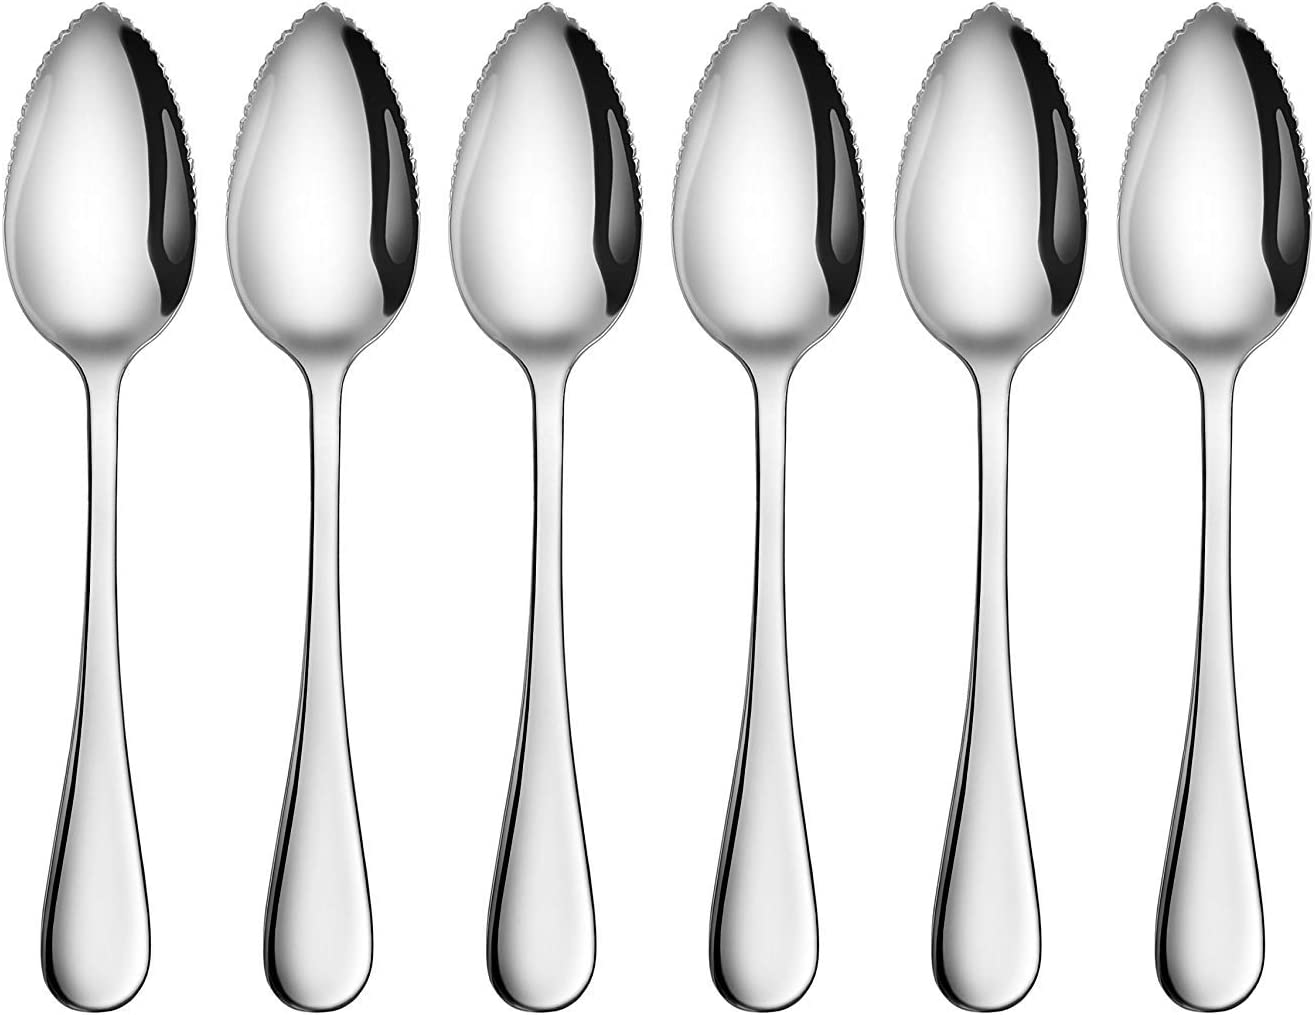 Grapefruit and Dessert Spoon - Serrated Chicago Mall with Max 53% OFF Edg Stainless Steel